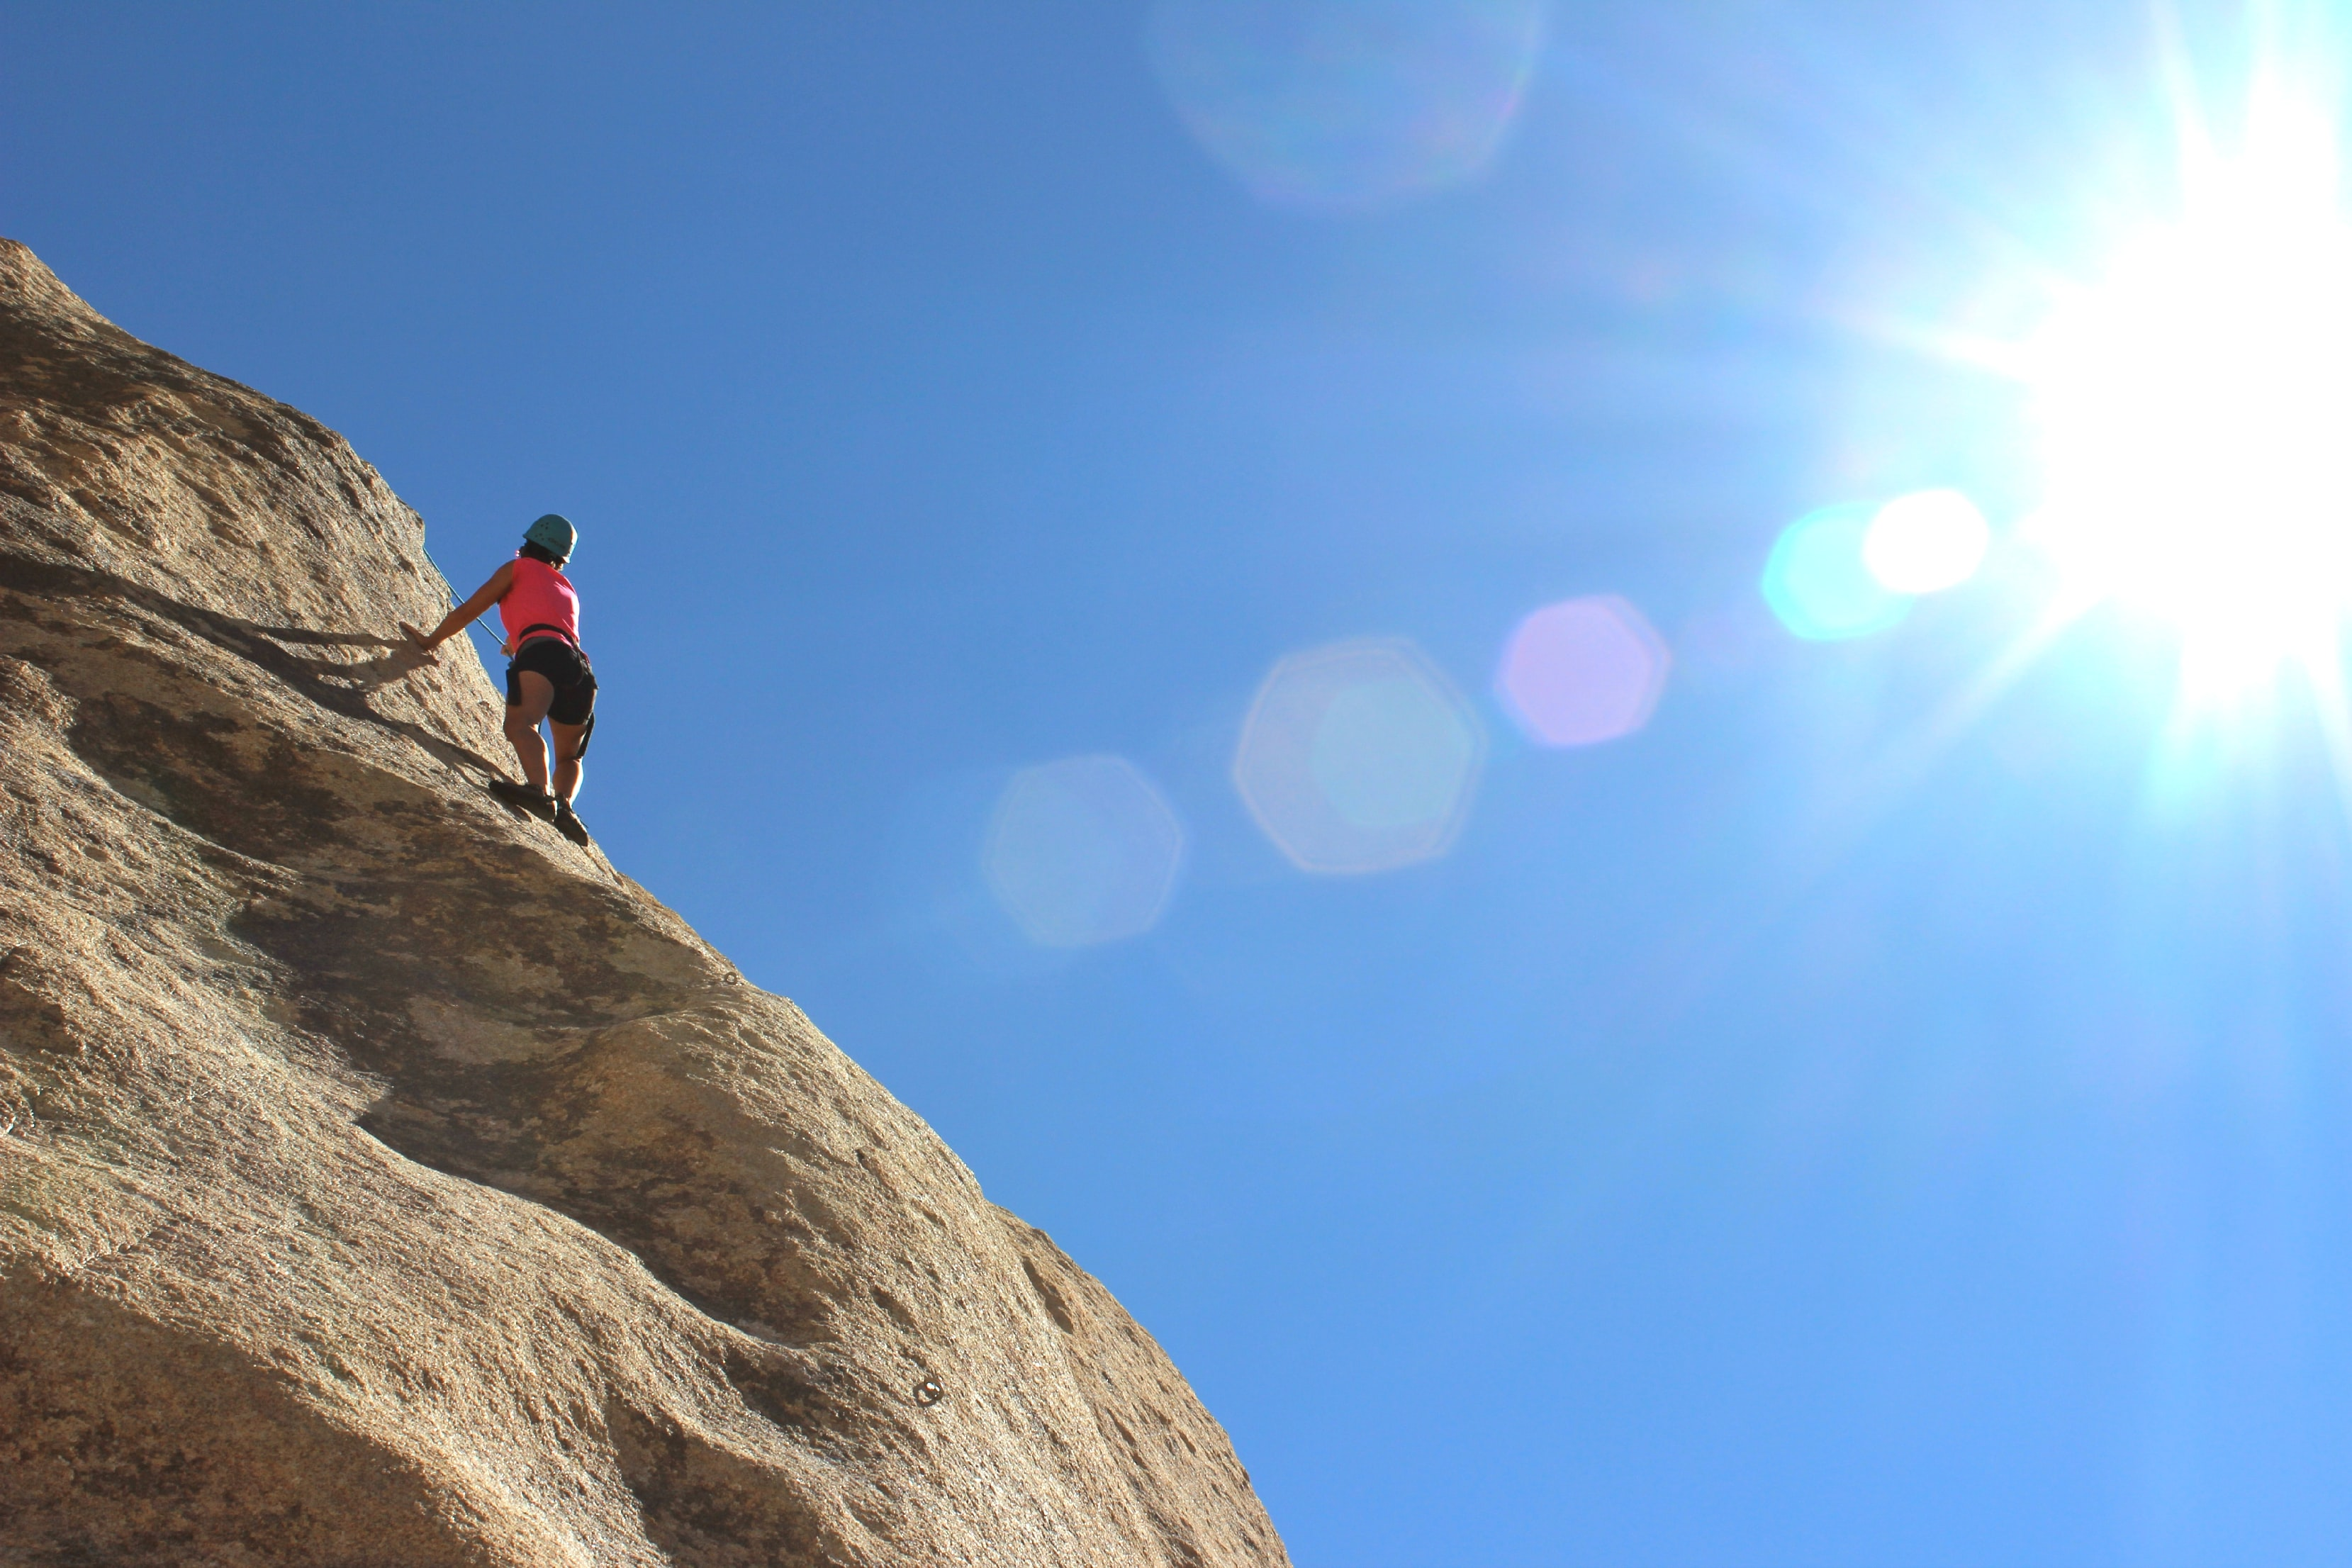 person rock climbing during day time